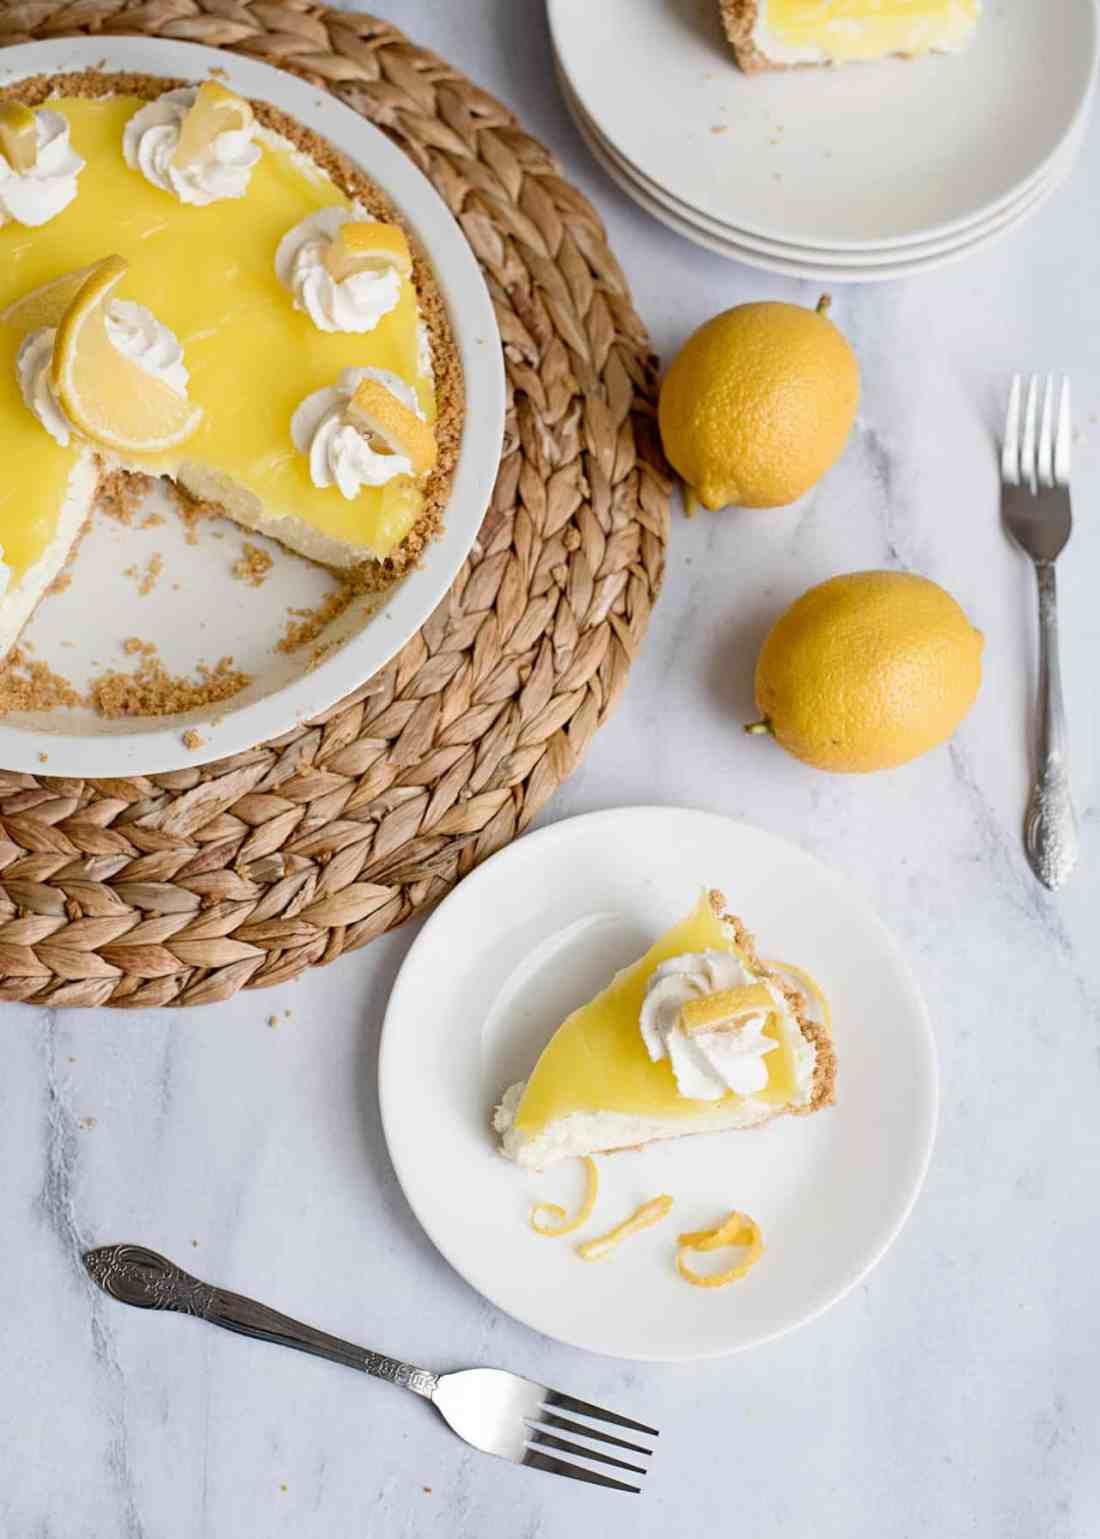 Lemon Cream Pie with Graham Cracker Crust Recipe. Can be made gluten and dairy free too!